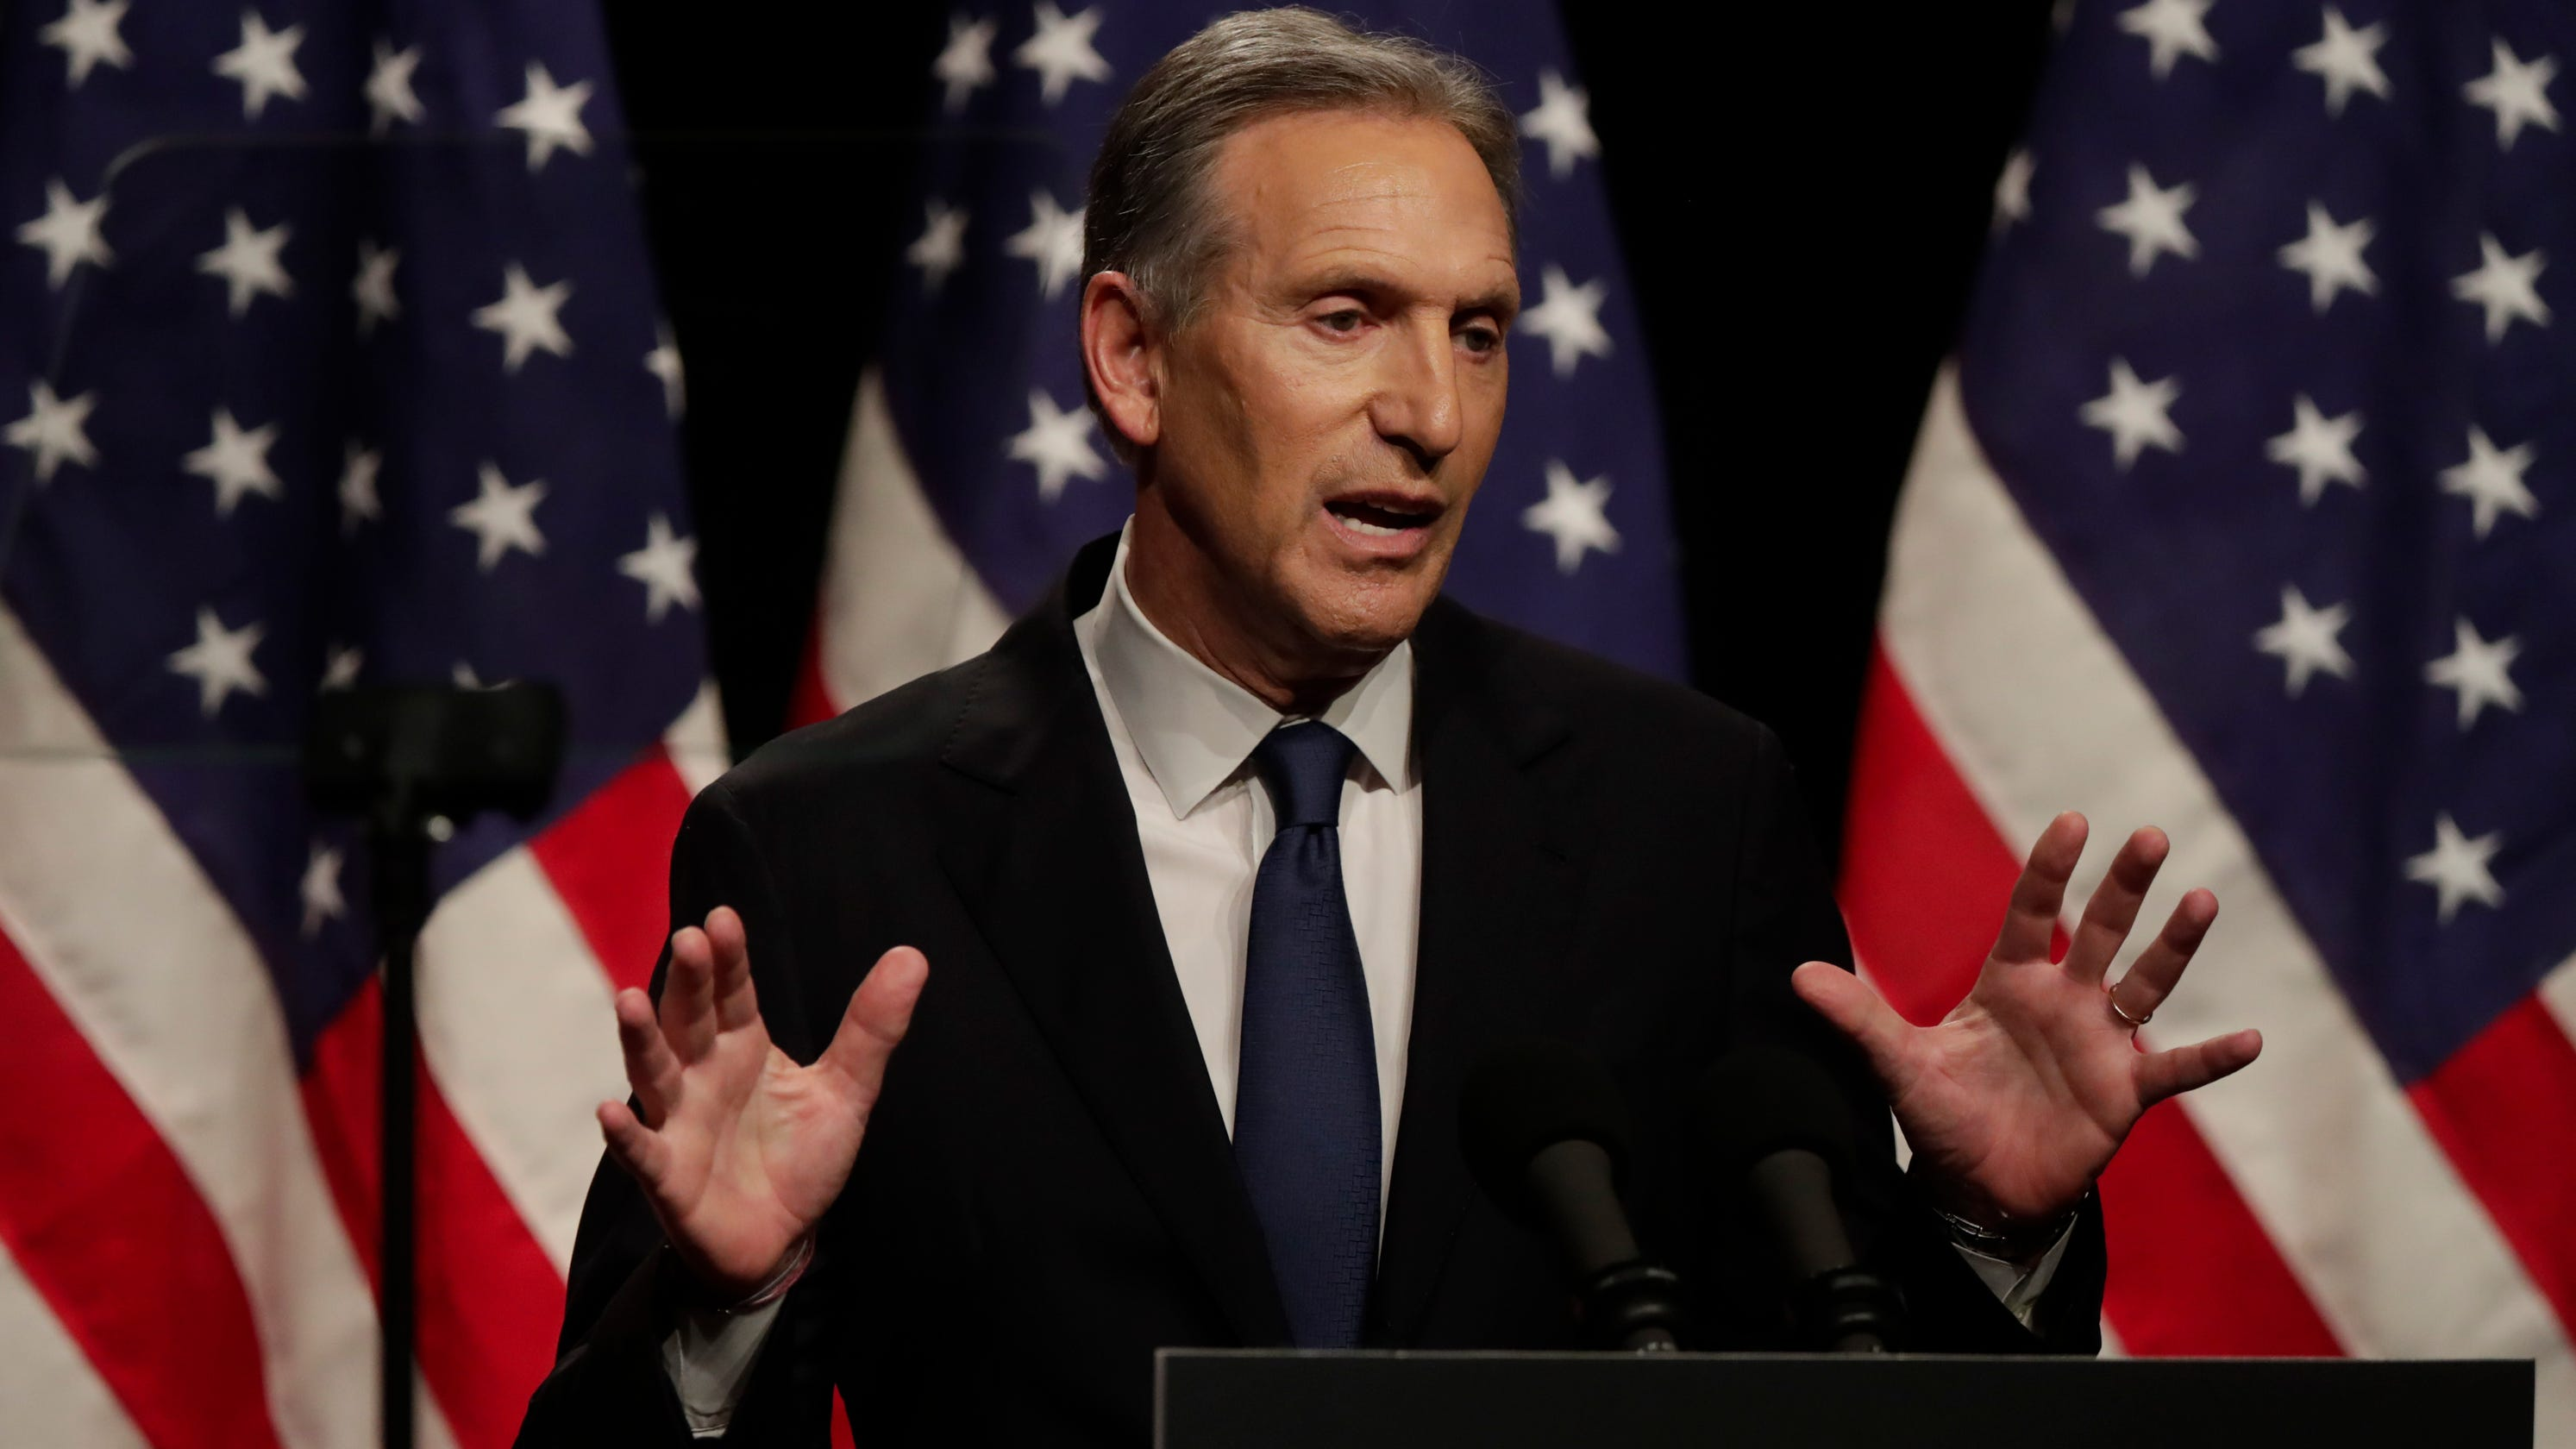 QnA VBage 'I honestly don't see color,' Howard Schultz says when asked about racial profiling